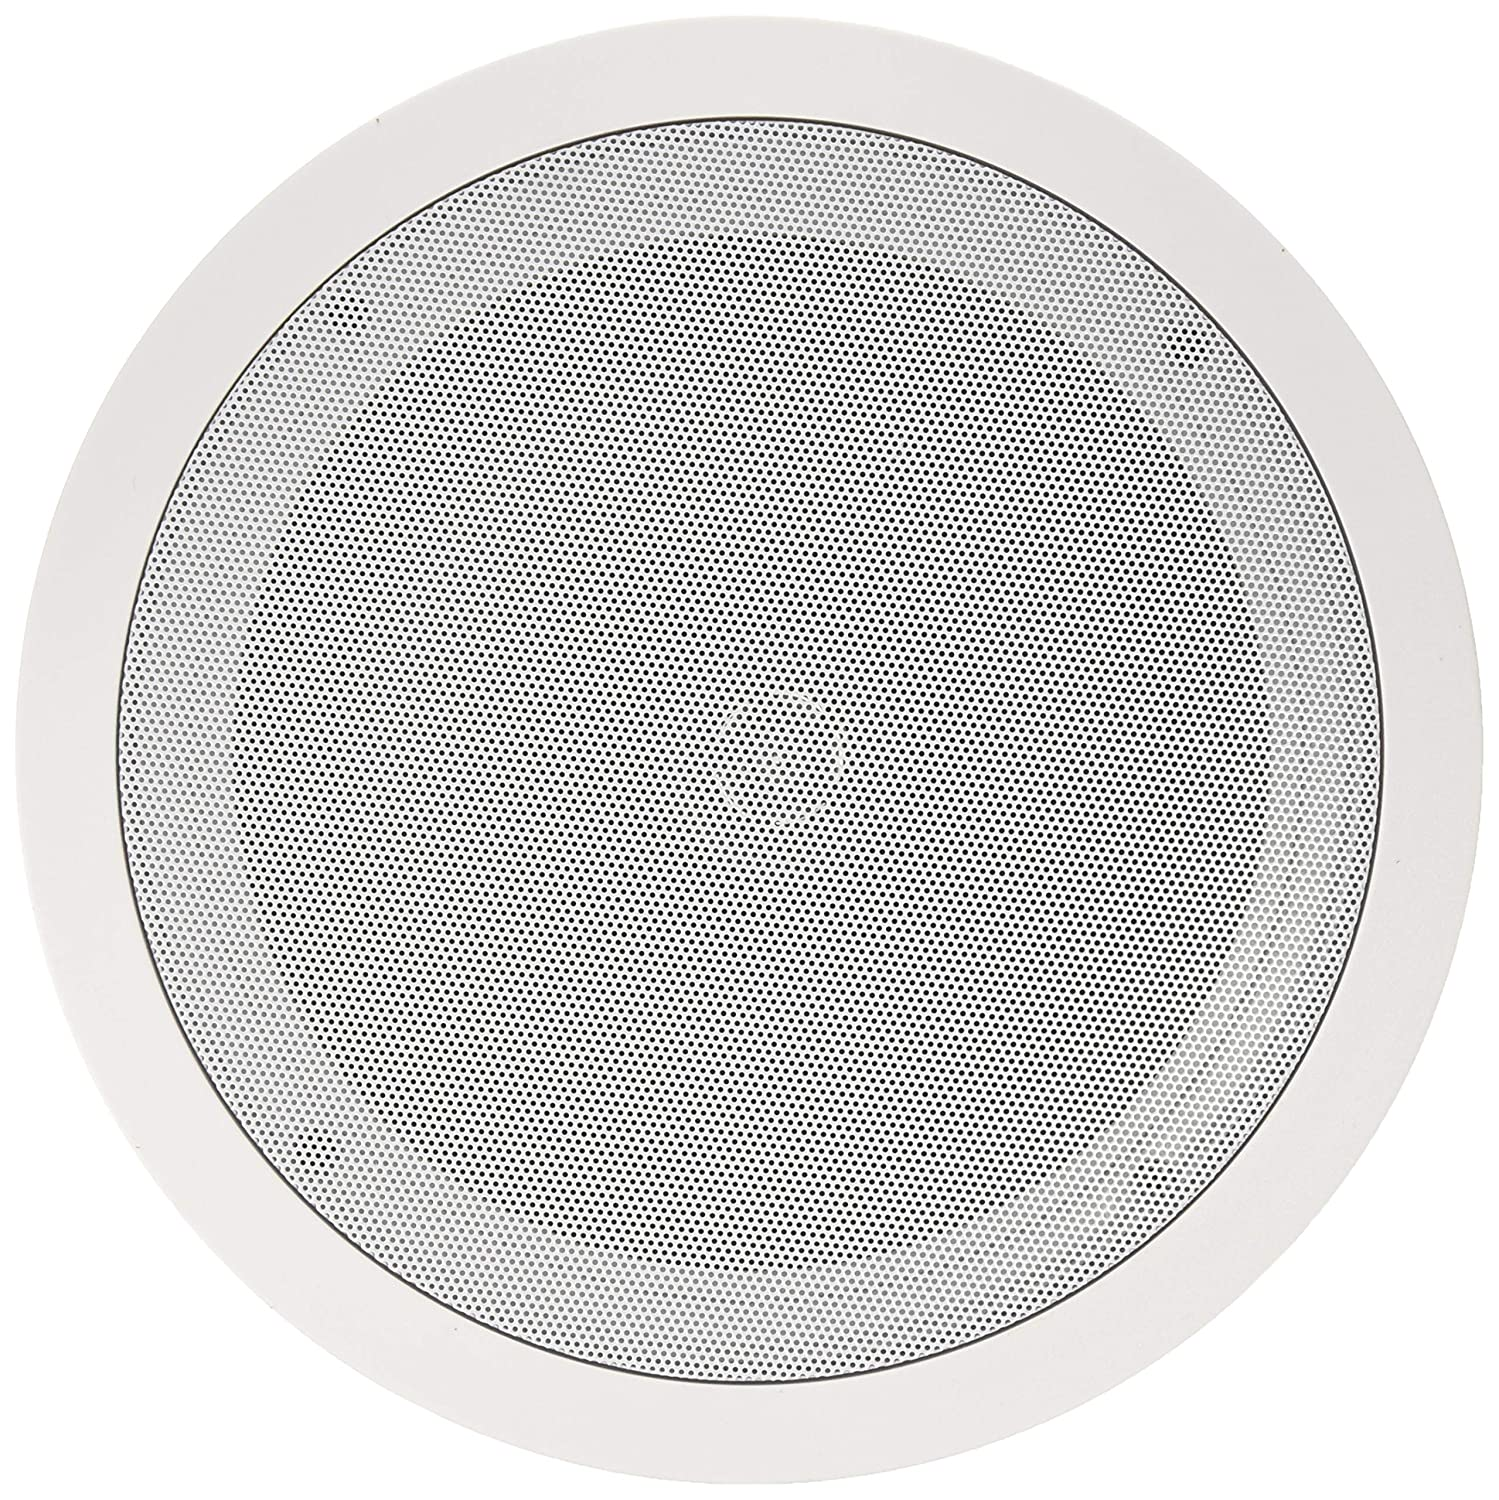 Pyle Audio - Home A/V PD-IC81RD 8IN Round Ceiling SPKR